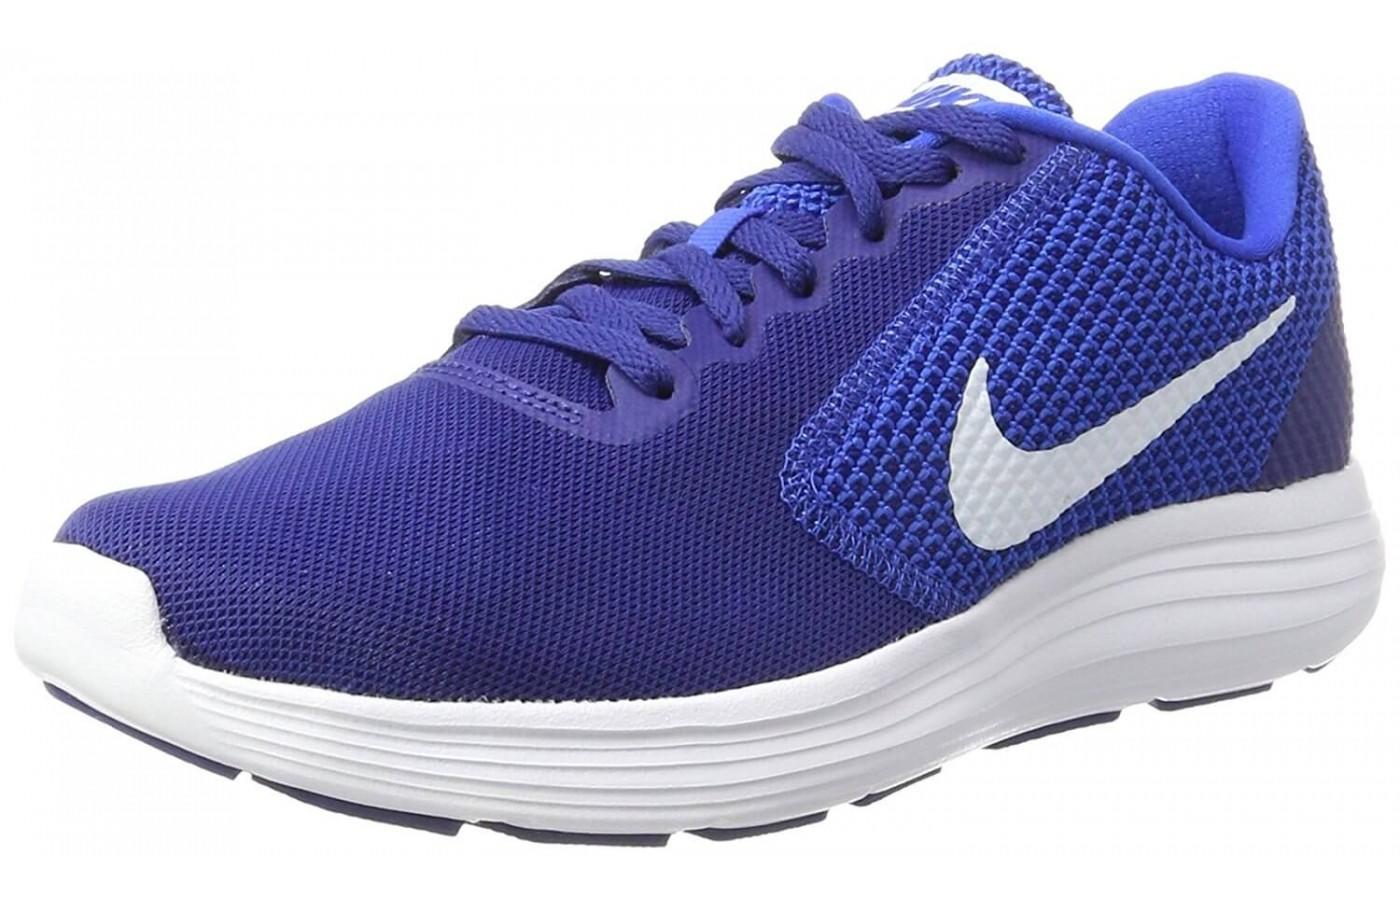 The Nike Revolution 3 features Phylon midsole cushioning